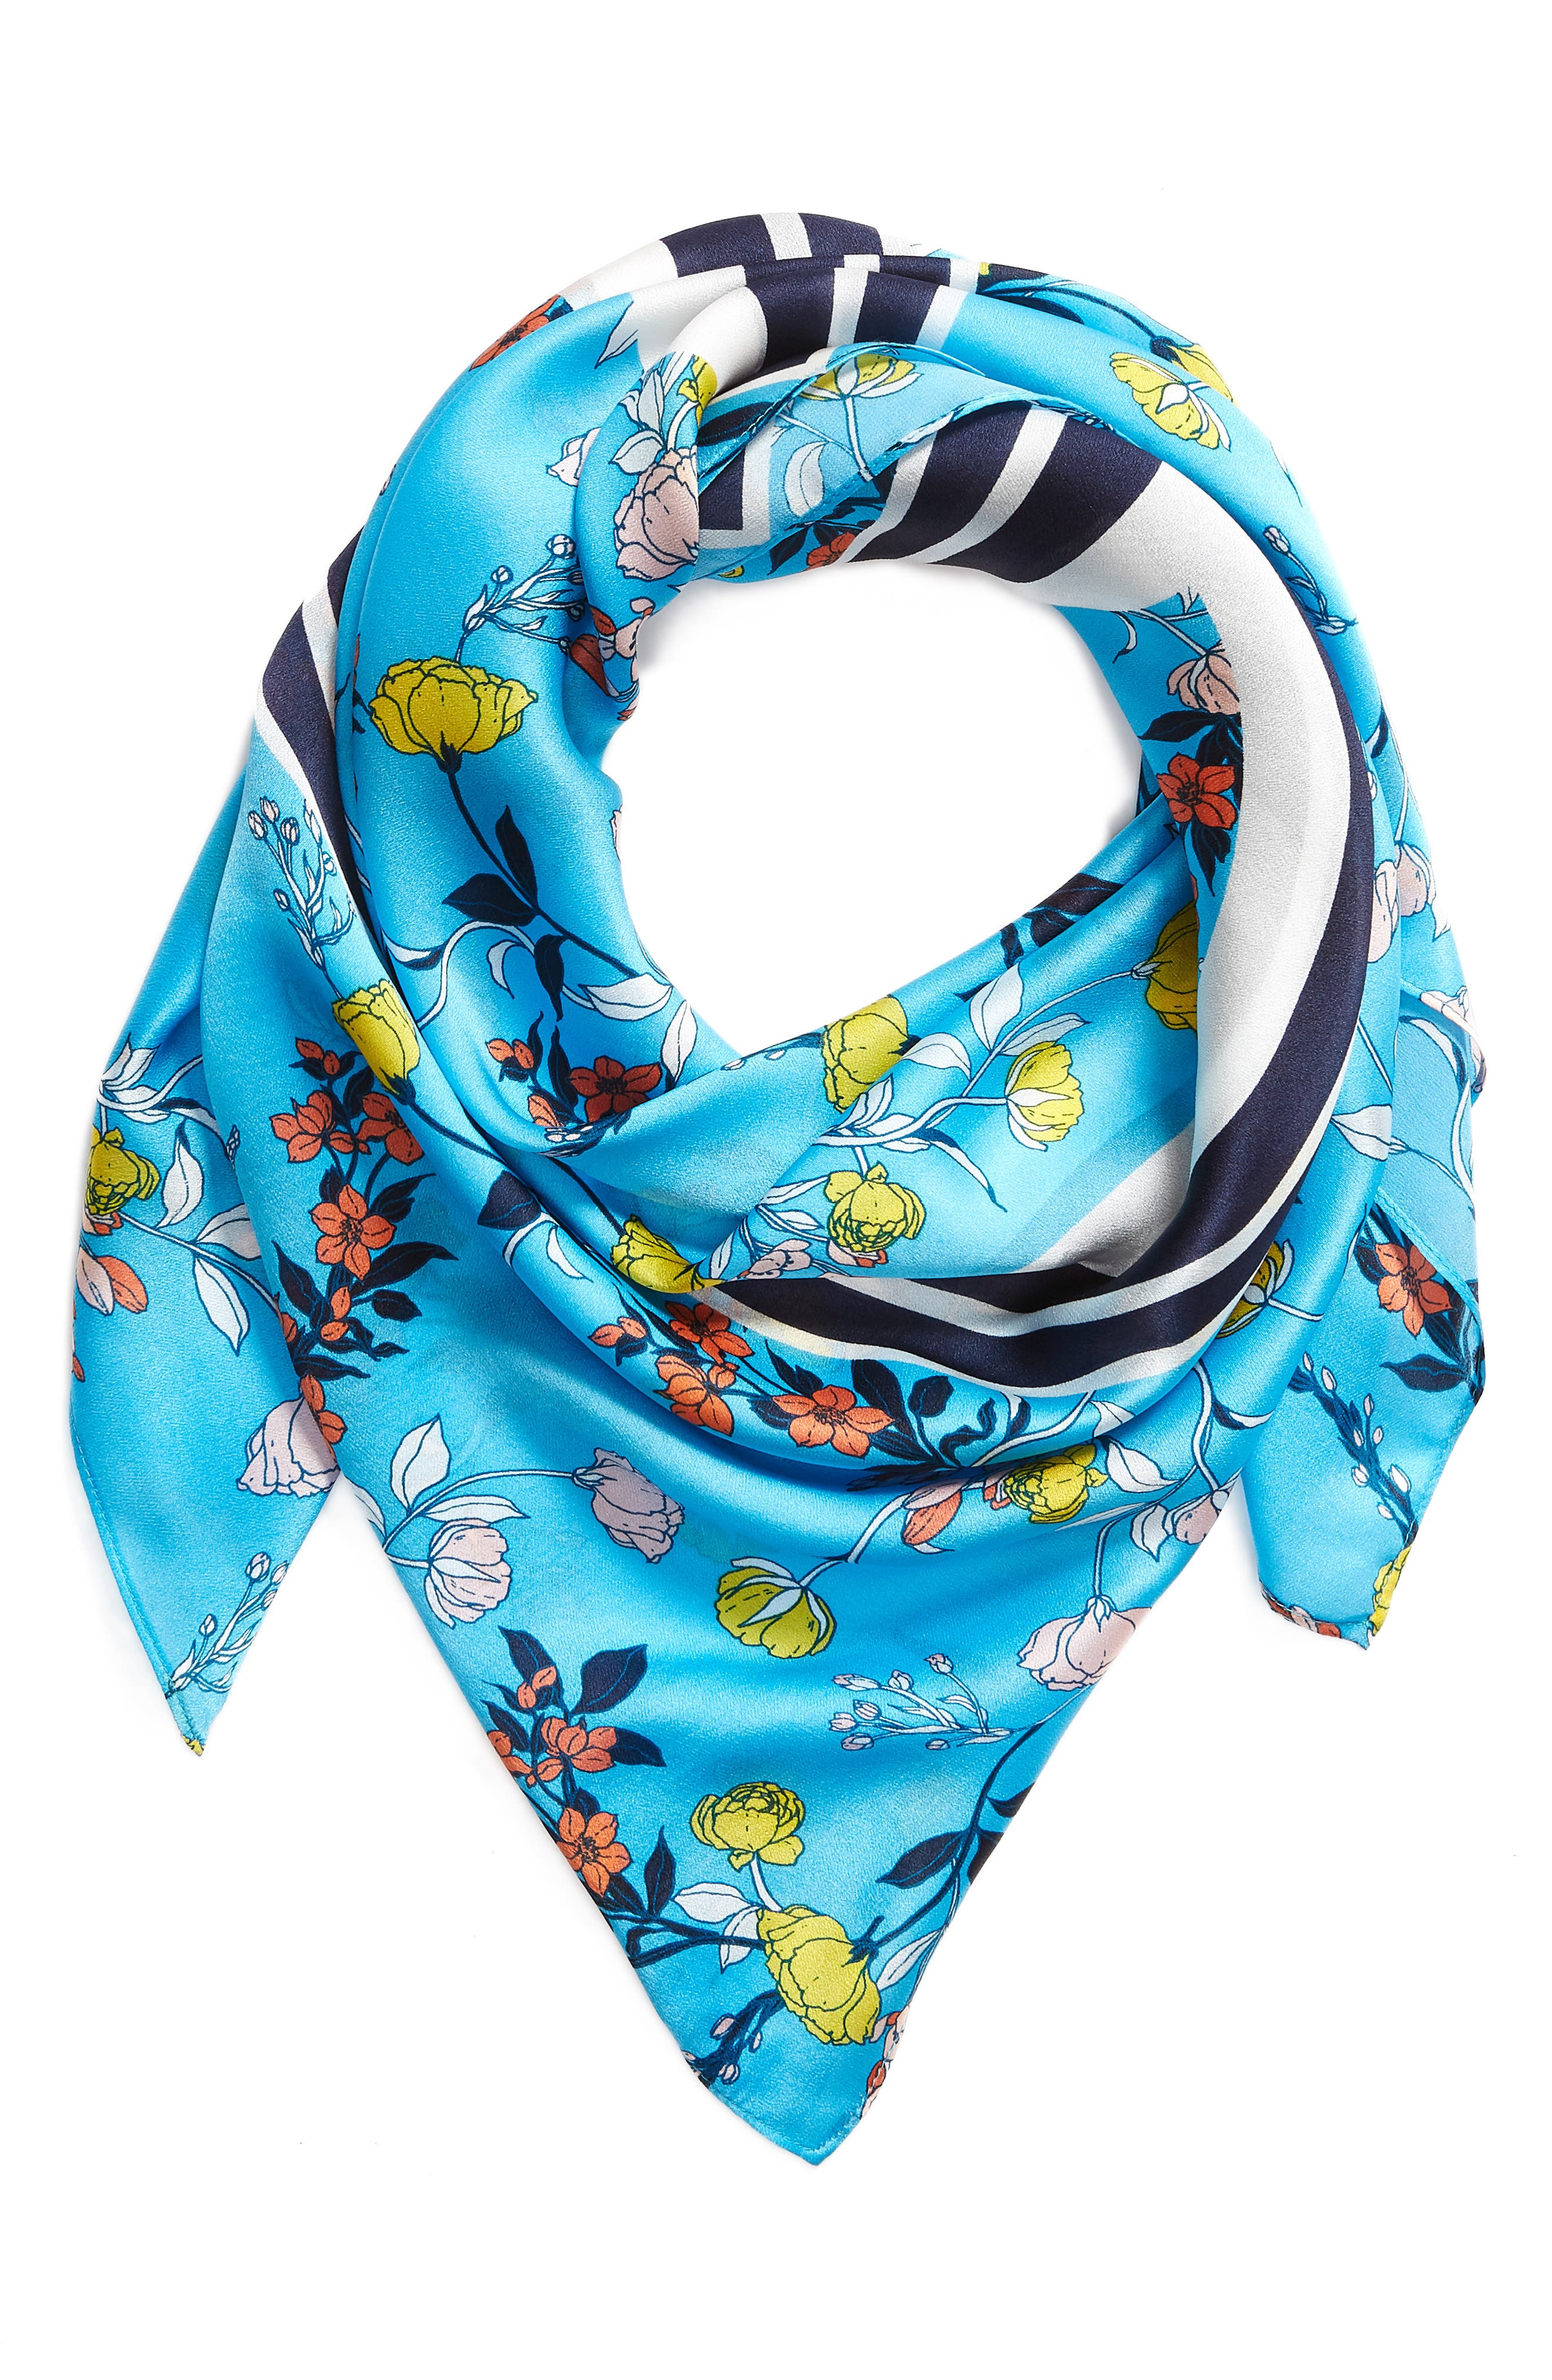 Print Silk Scarf,                             Alternate thumbnail 2, color,                             Blue Graphic Floral Mix